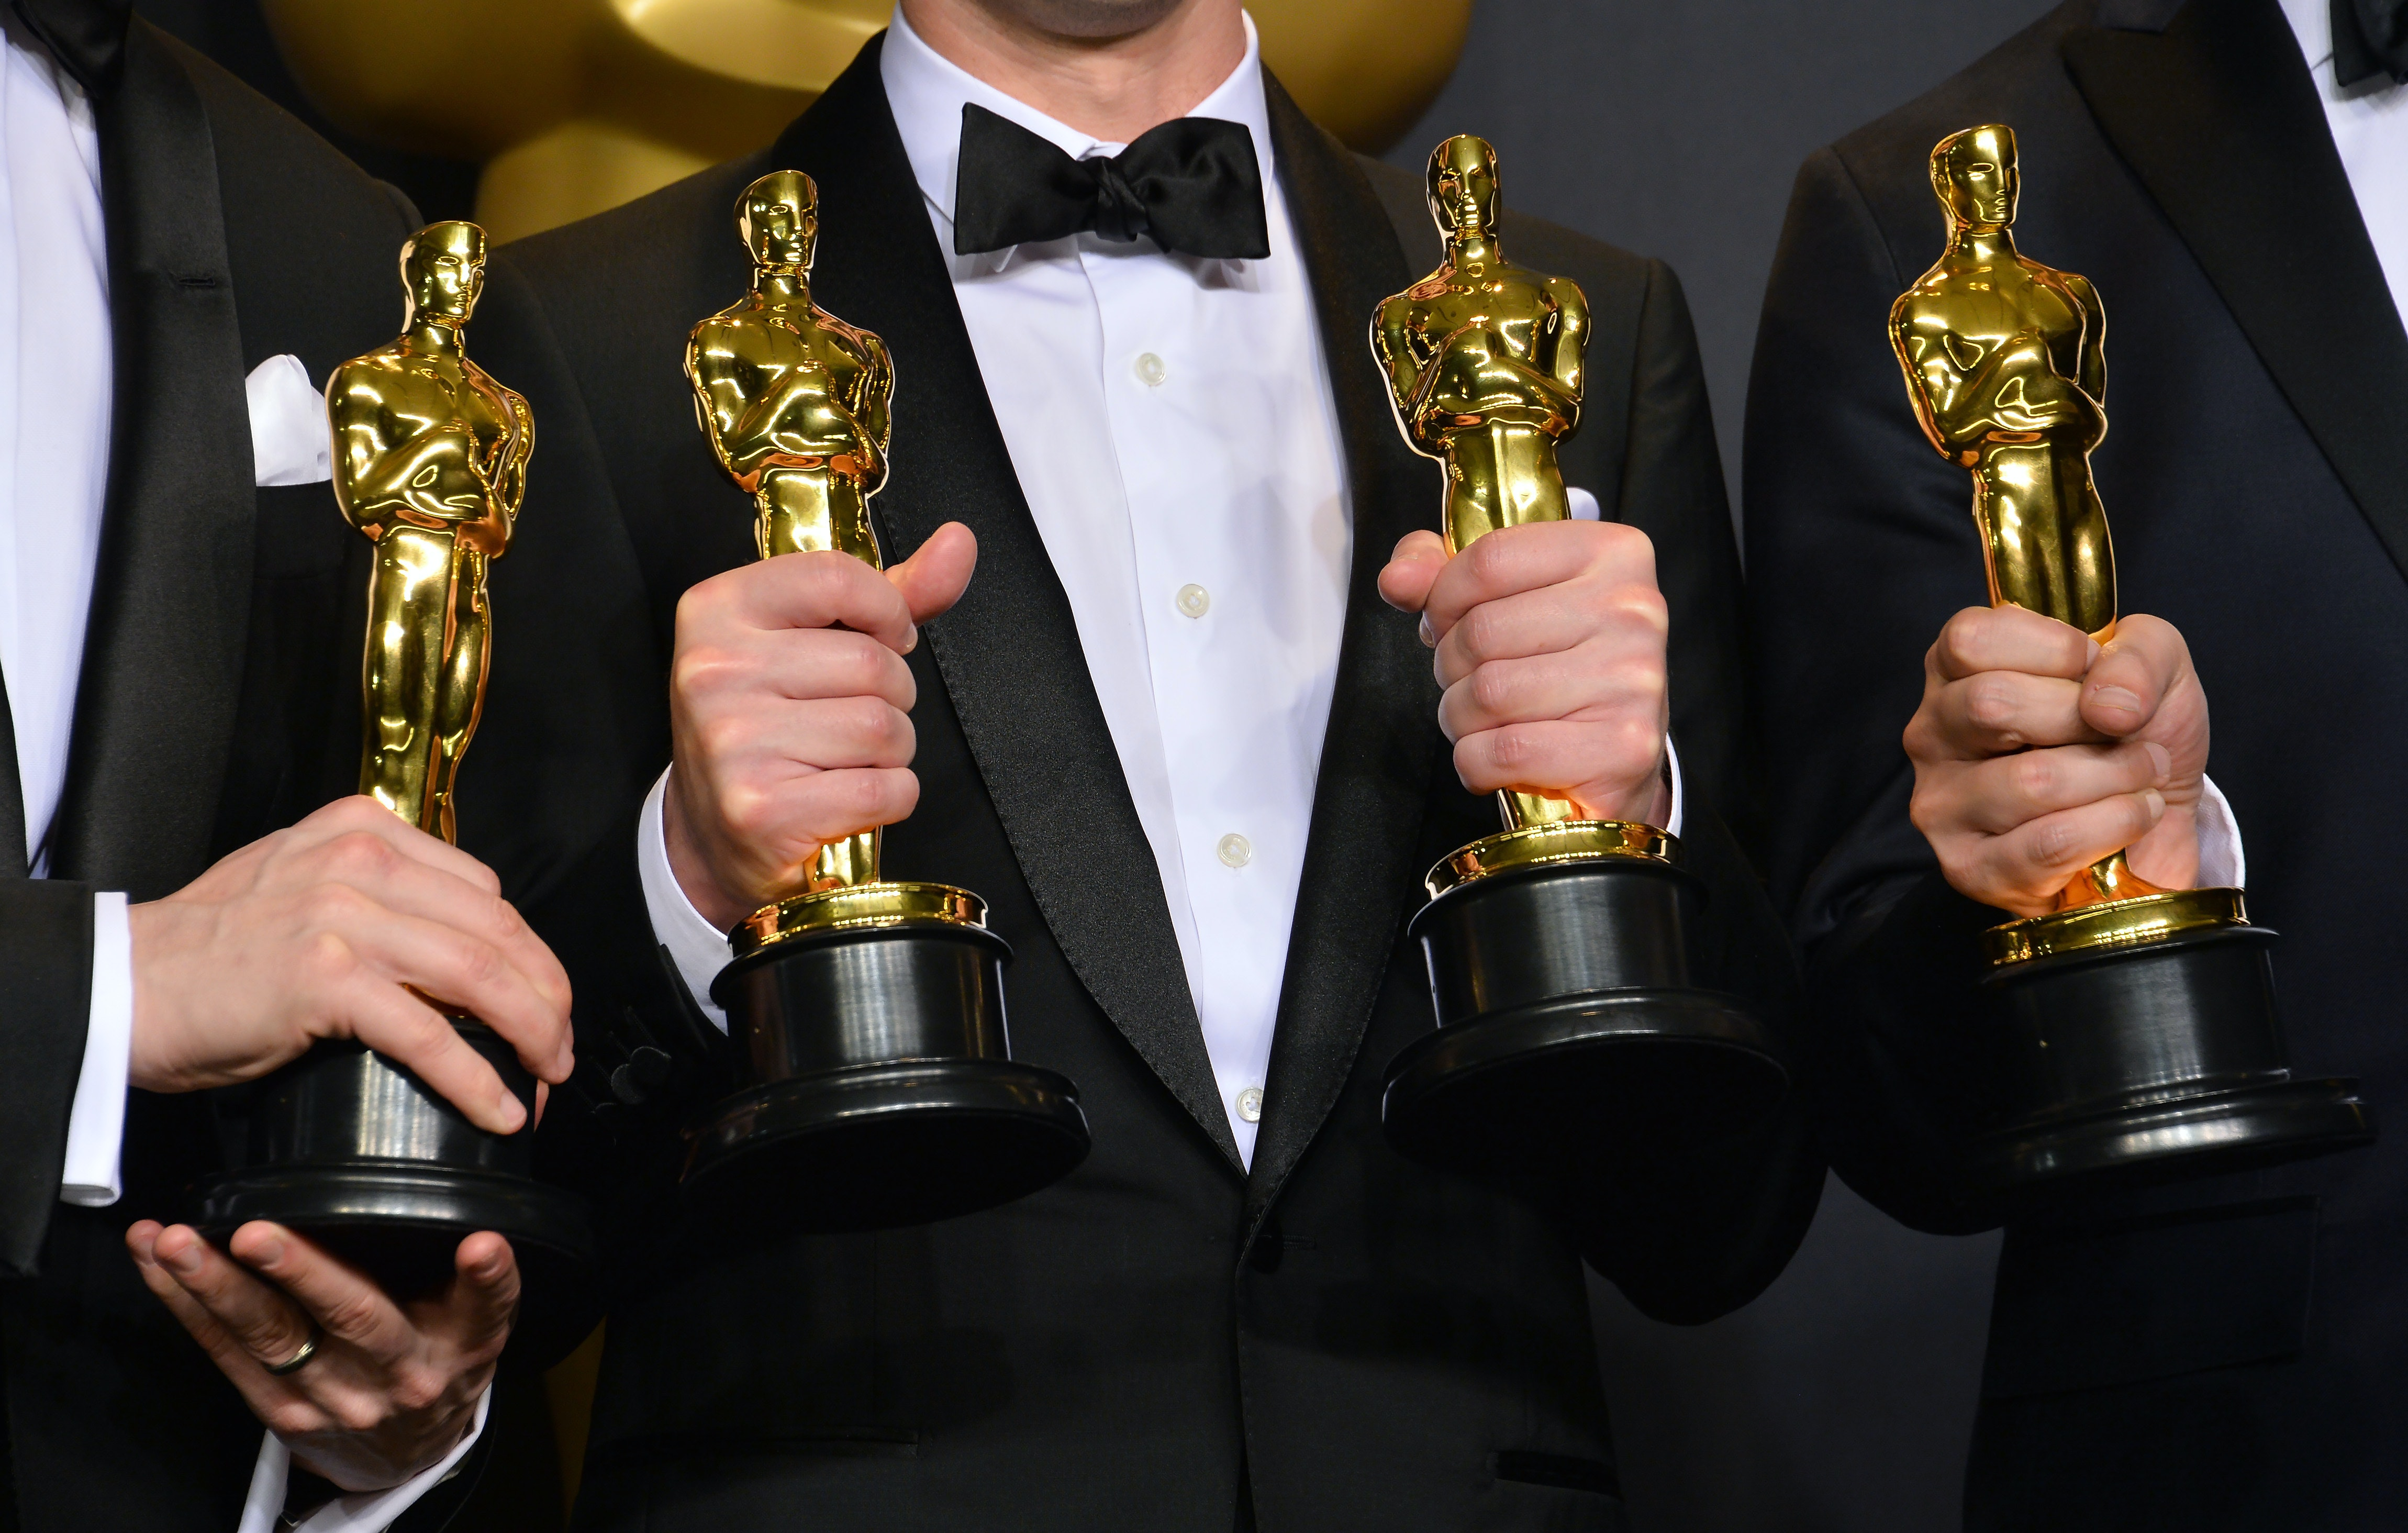 Oscars: winning is more about appealing to the middlebrow than making art